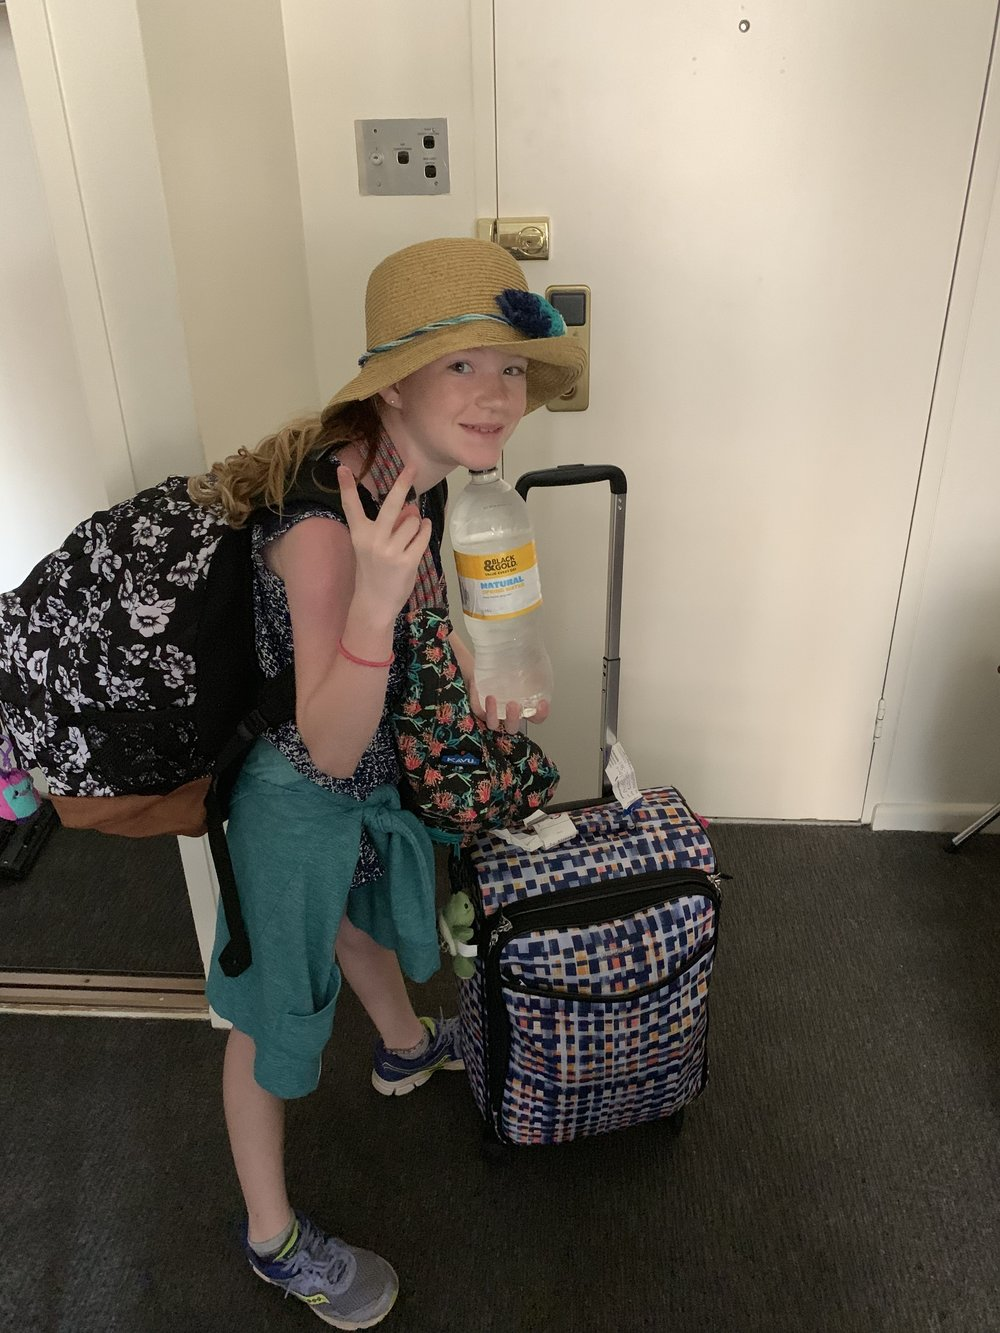 She's got a lot of luggage to carry!!